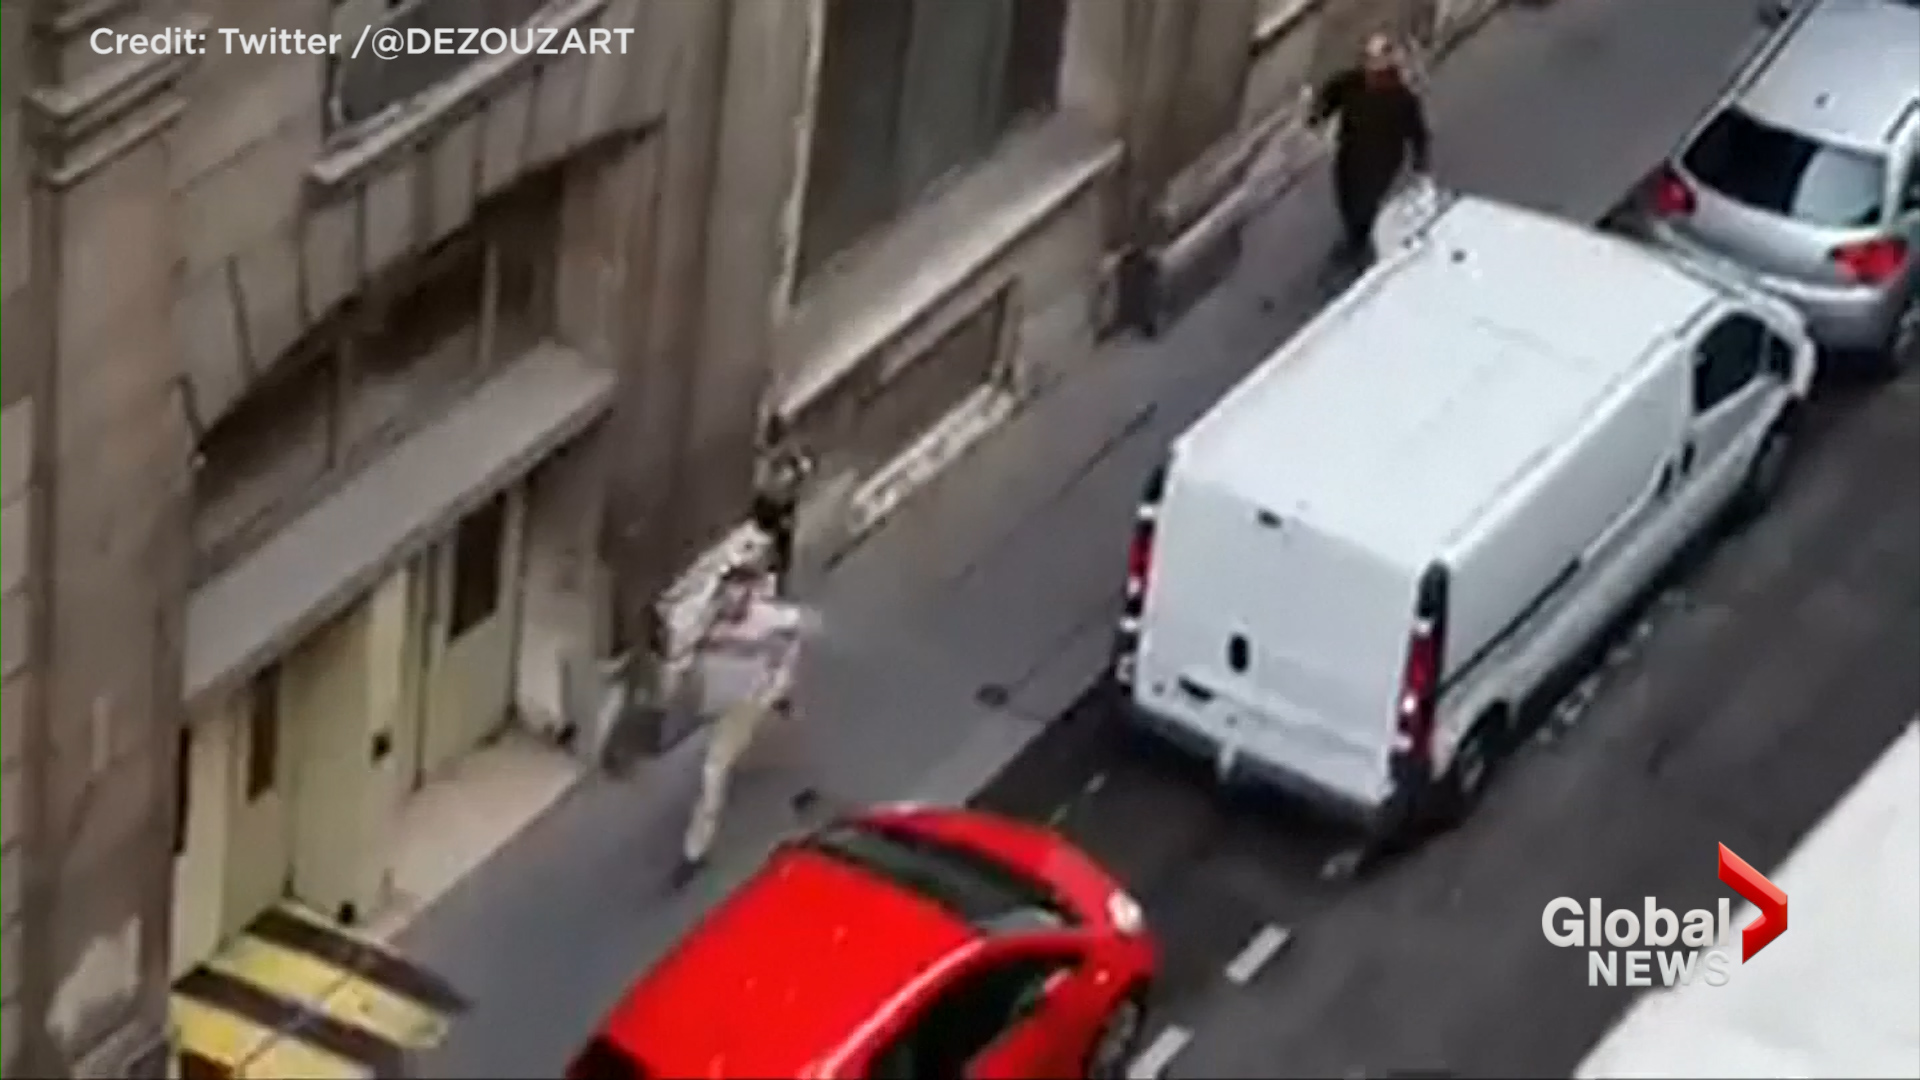 The knife attack in Paris: new details